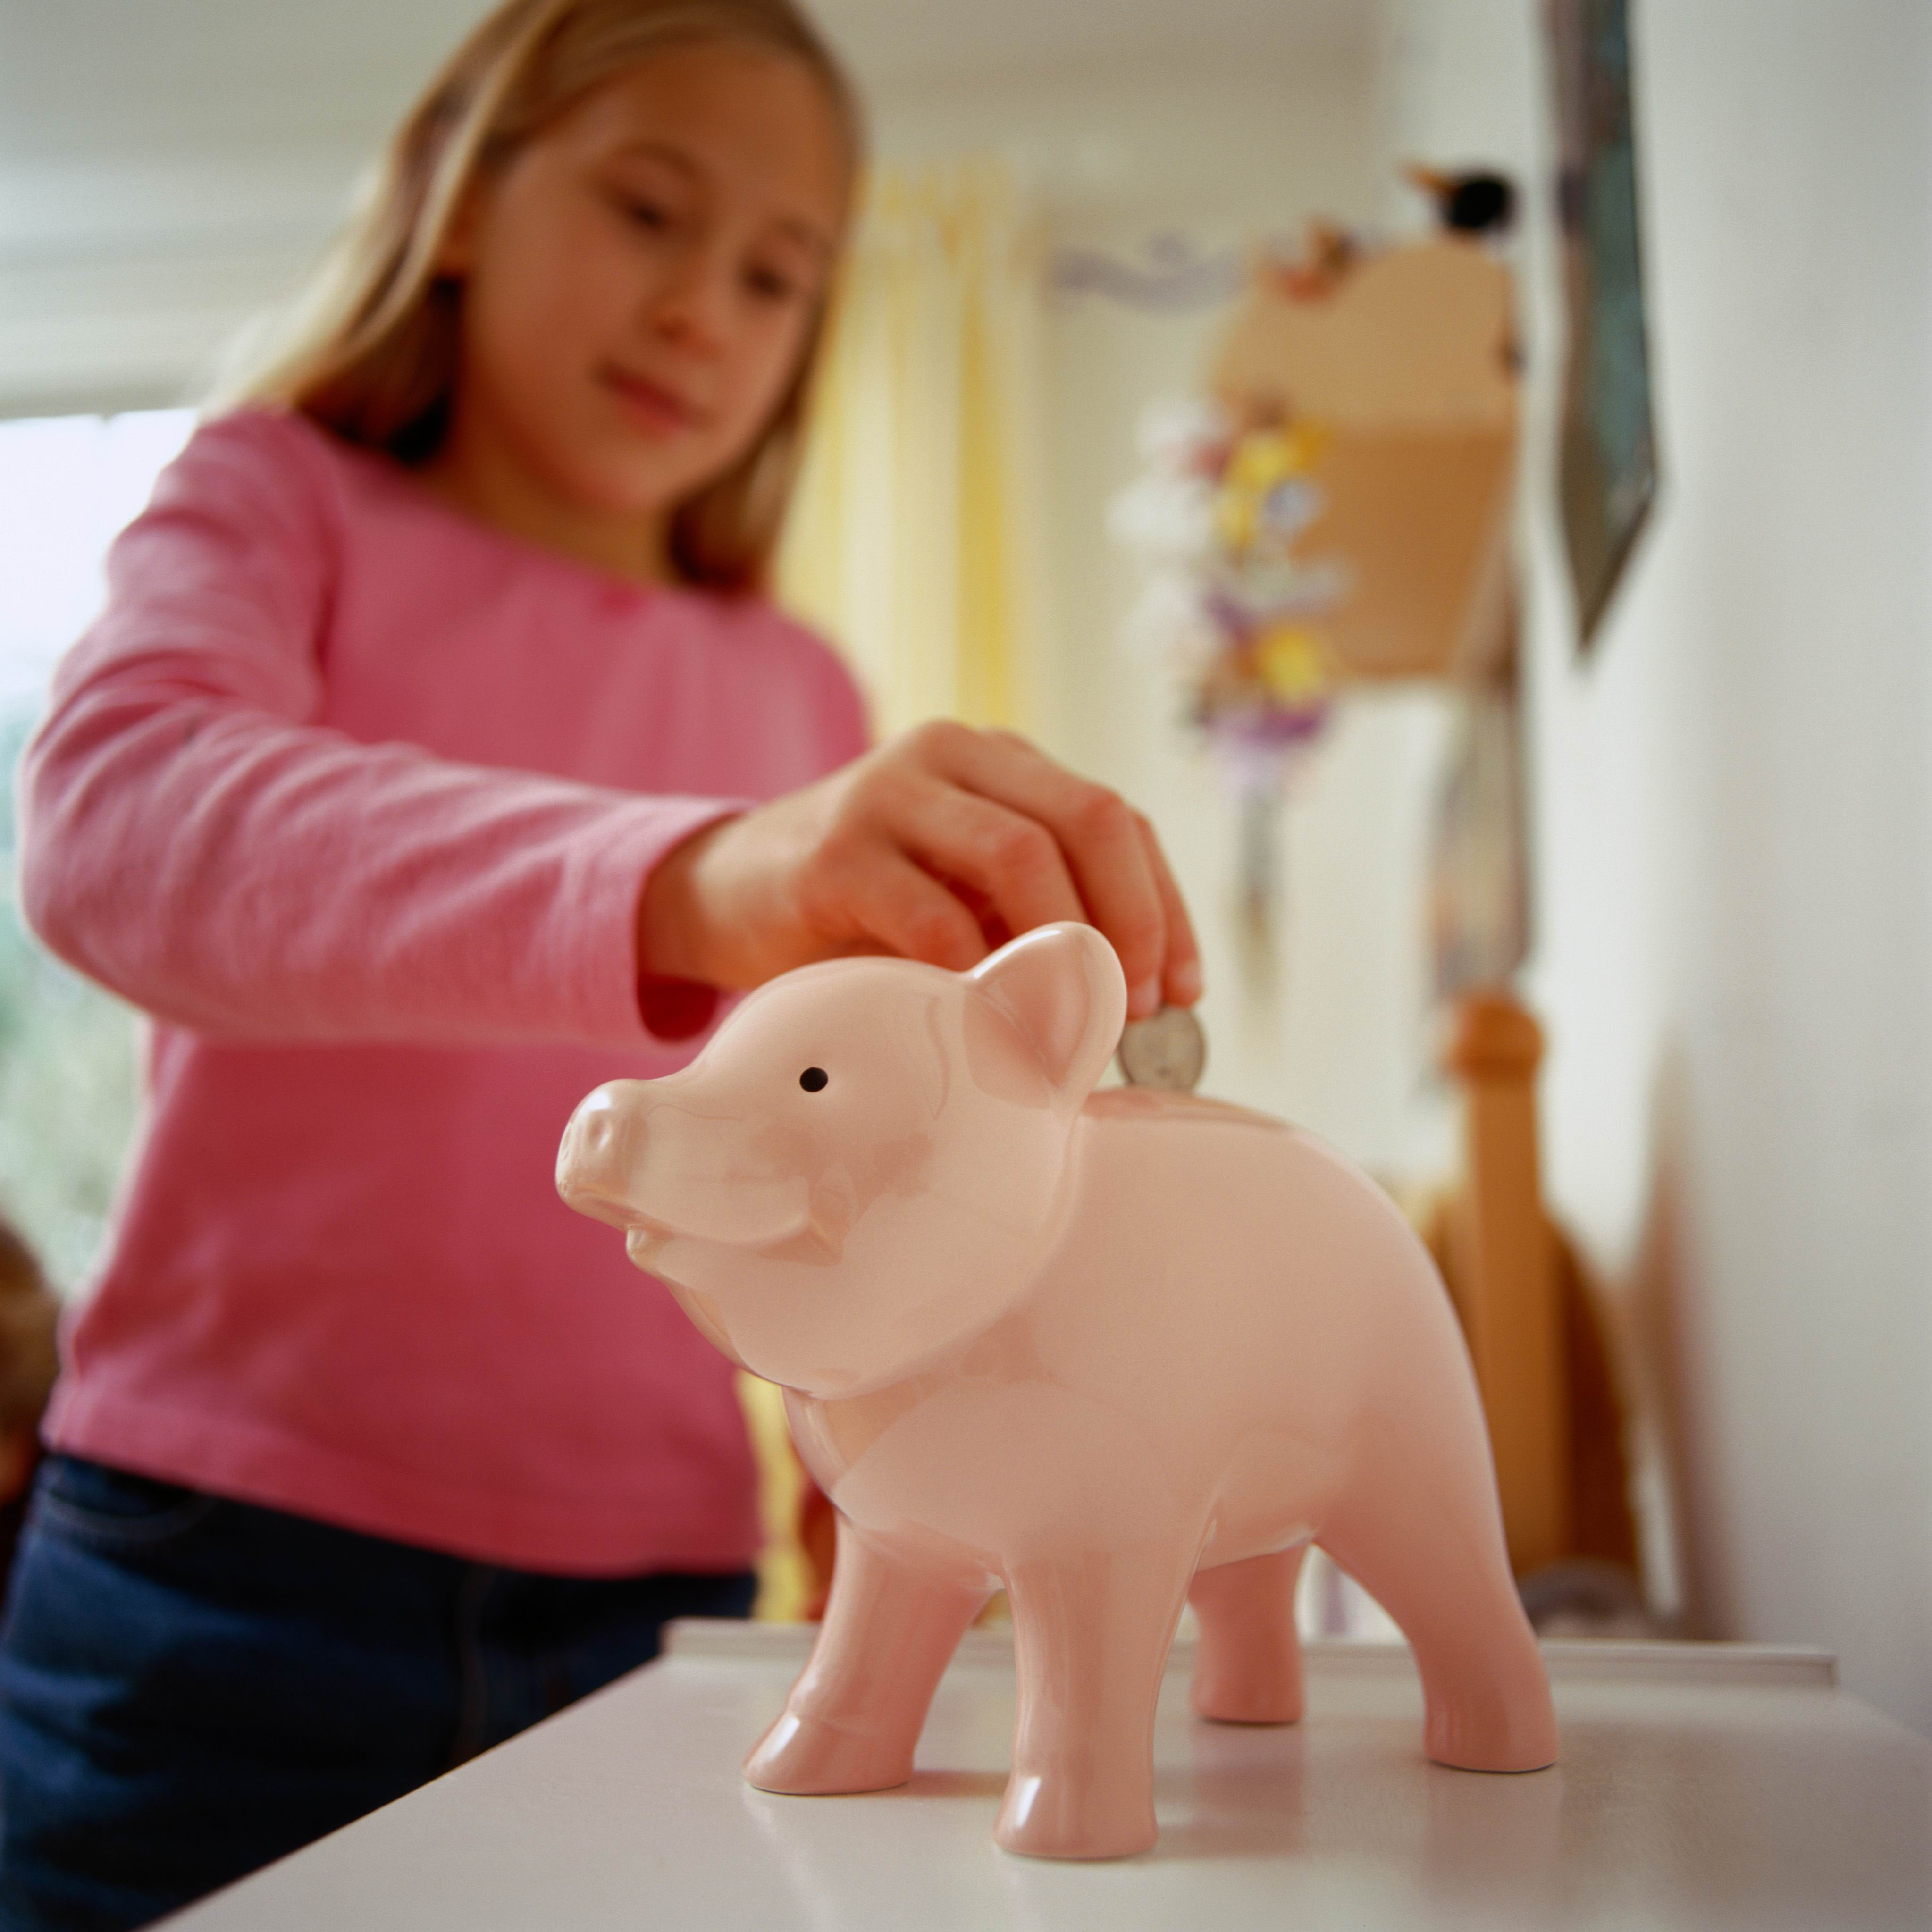 young girl putting a coin into a light pink piggy bank